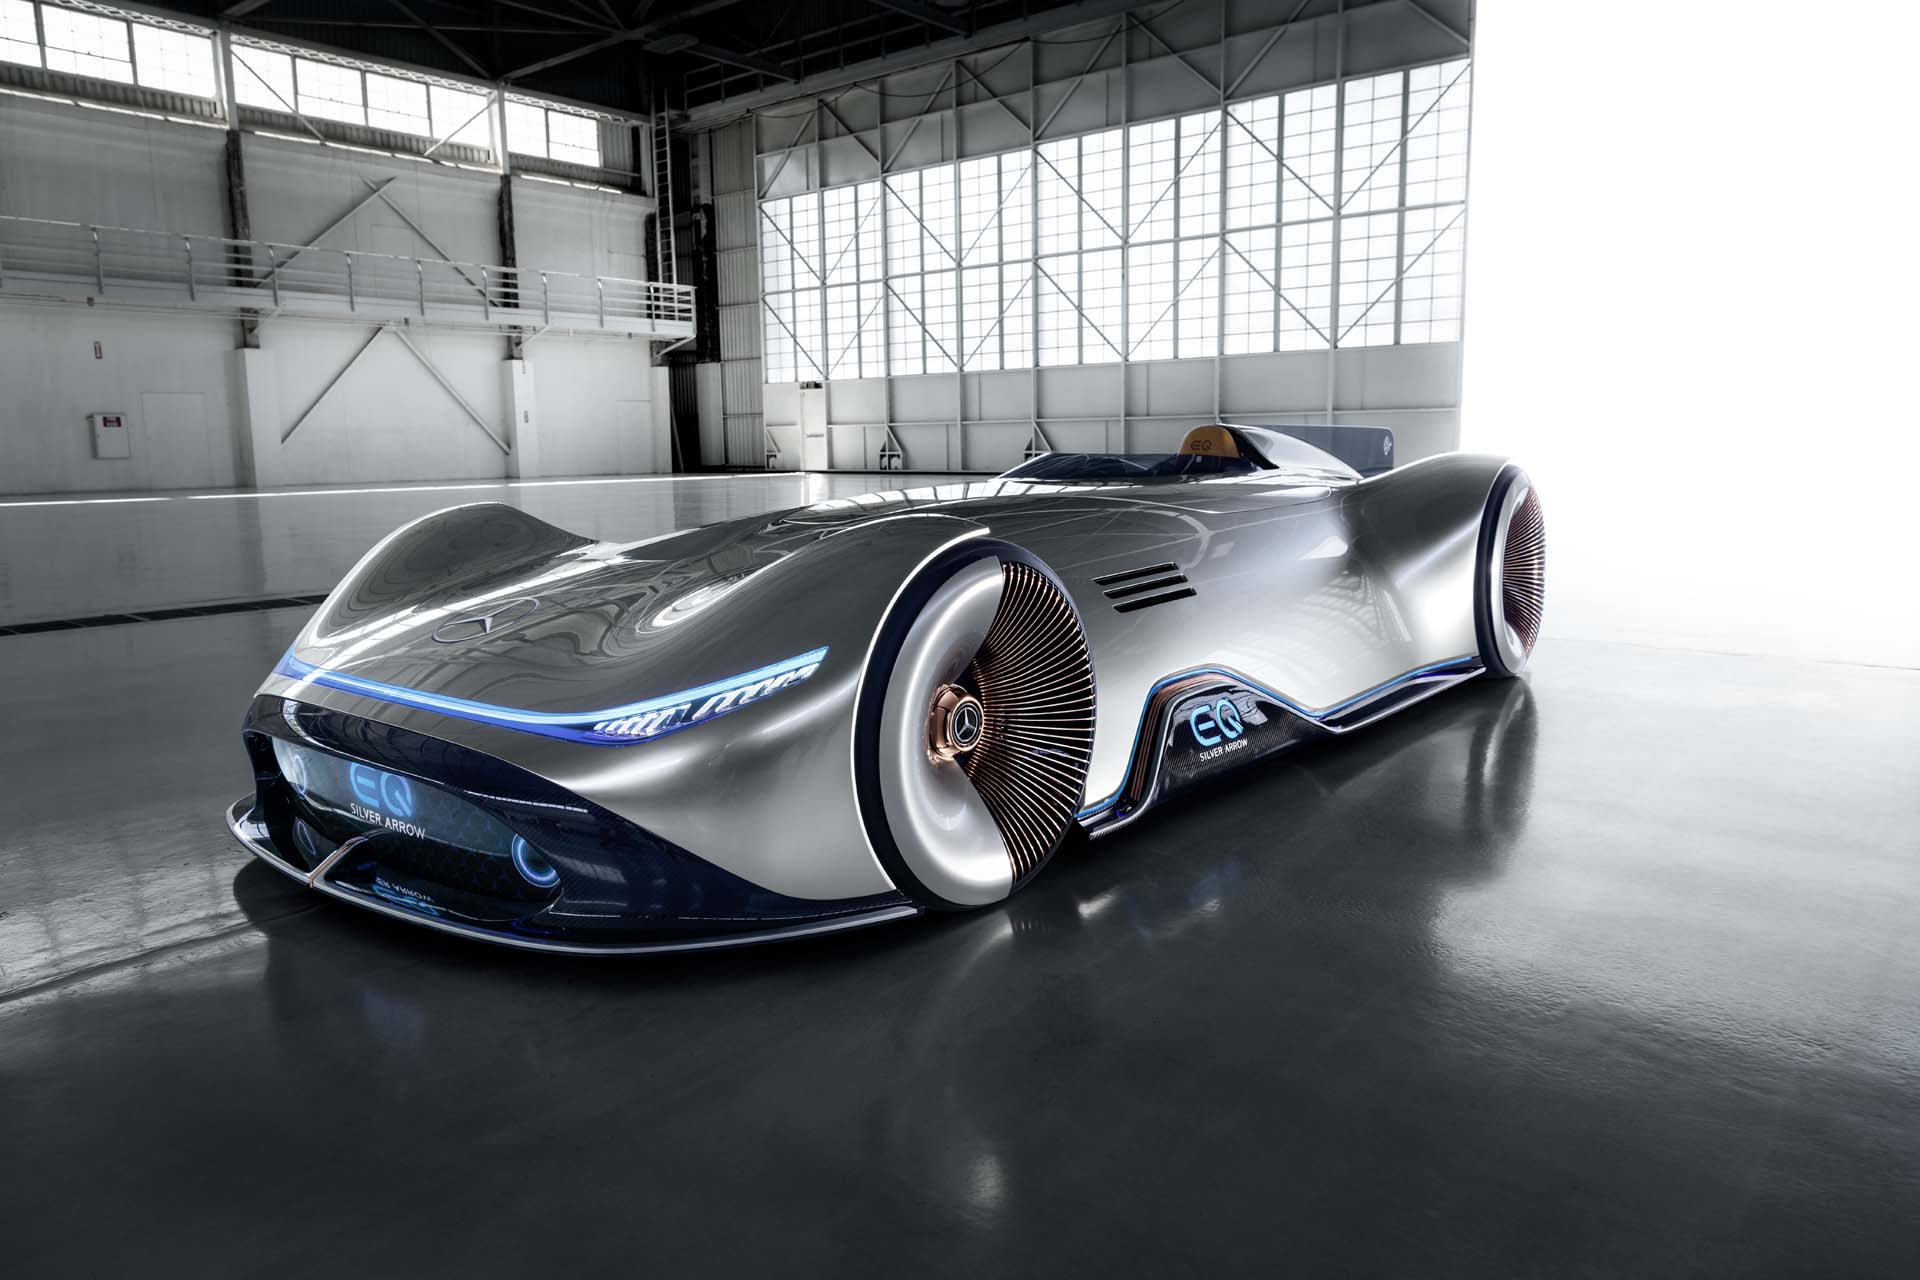 Mercedes Eq Silver Arrow Concept Is An Electric Streamliner With 738 Hp Of Grunt